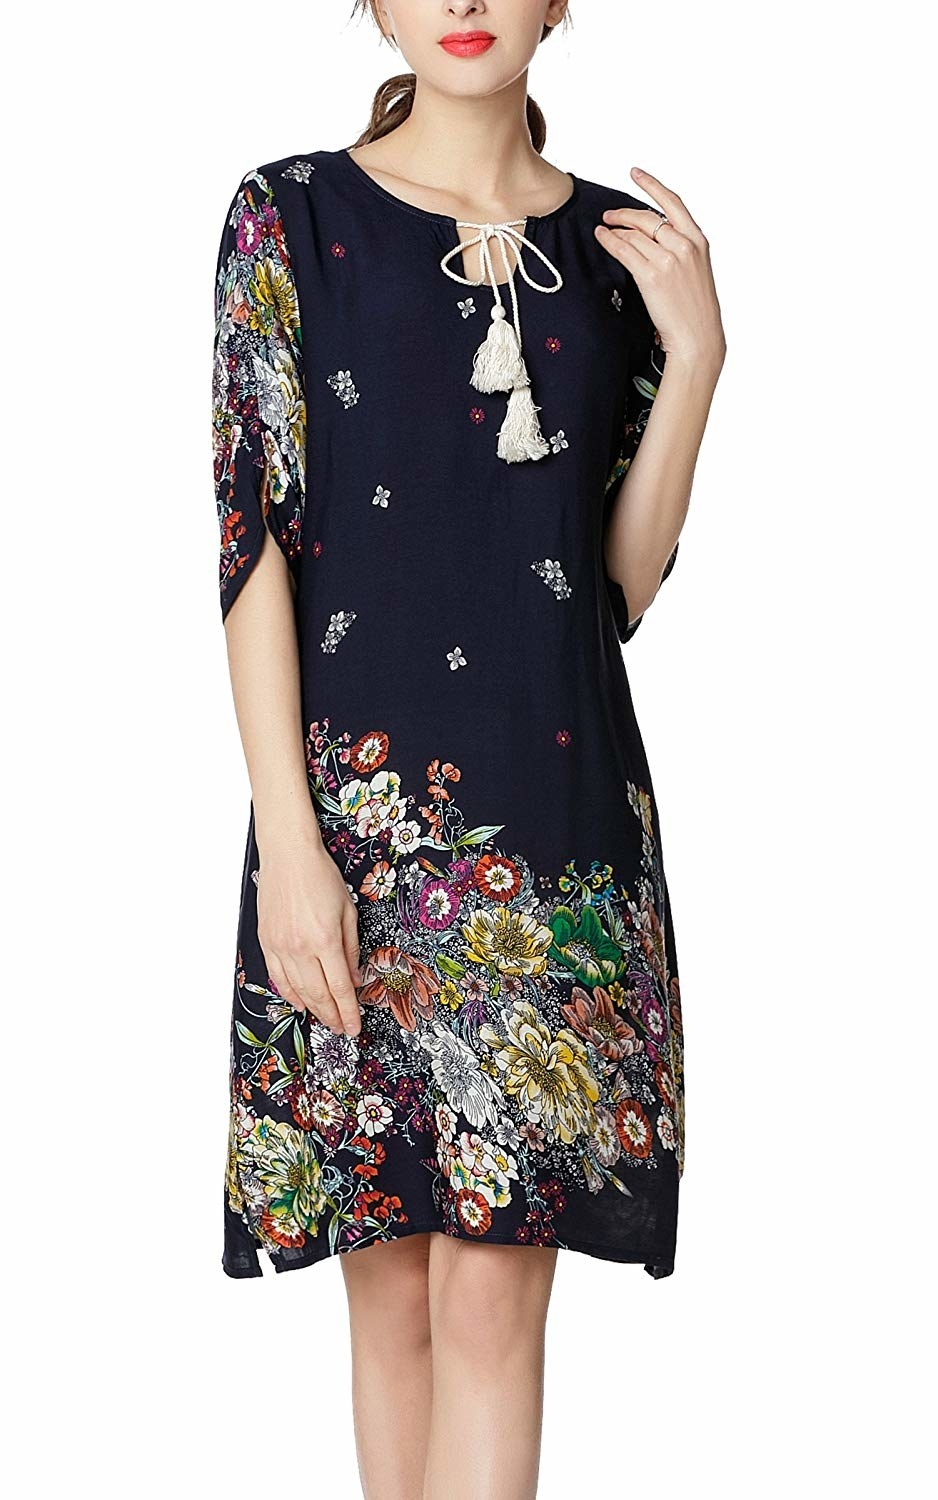 a0255354f33 An amazingly affordable boho tunic dress that s got so many cute details